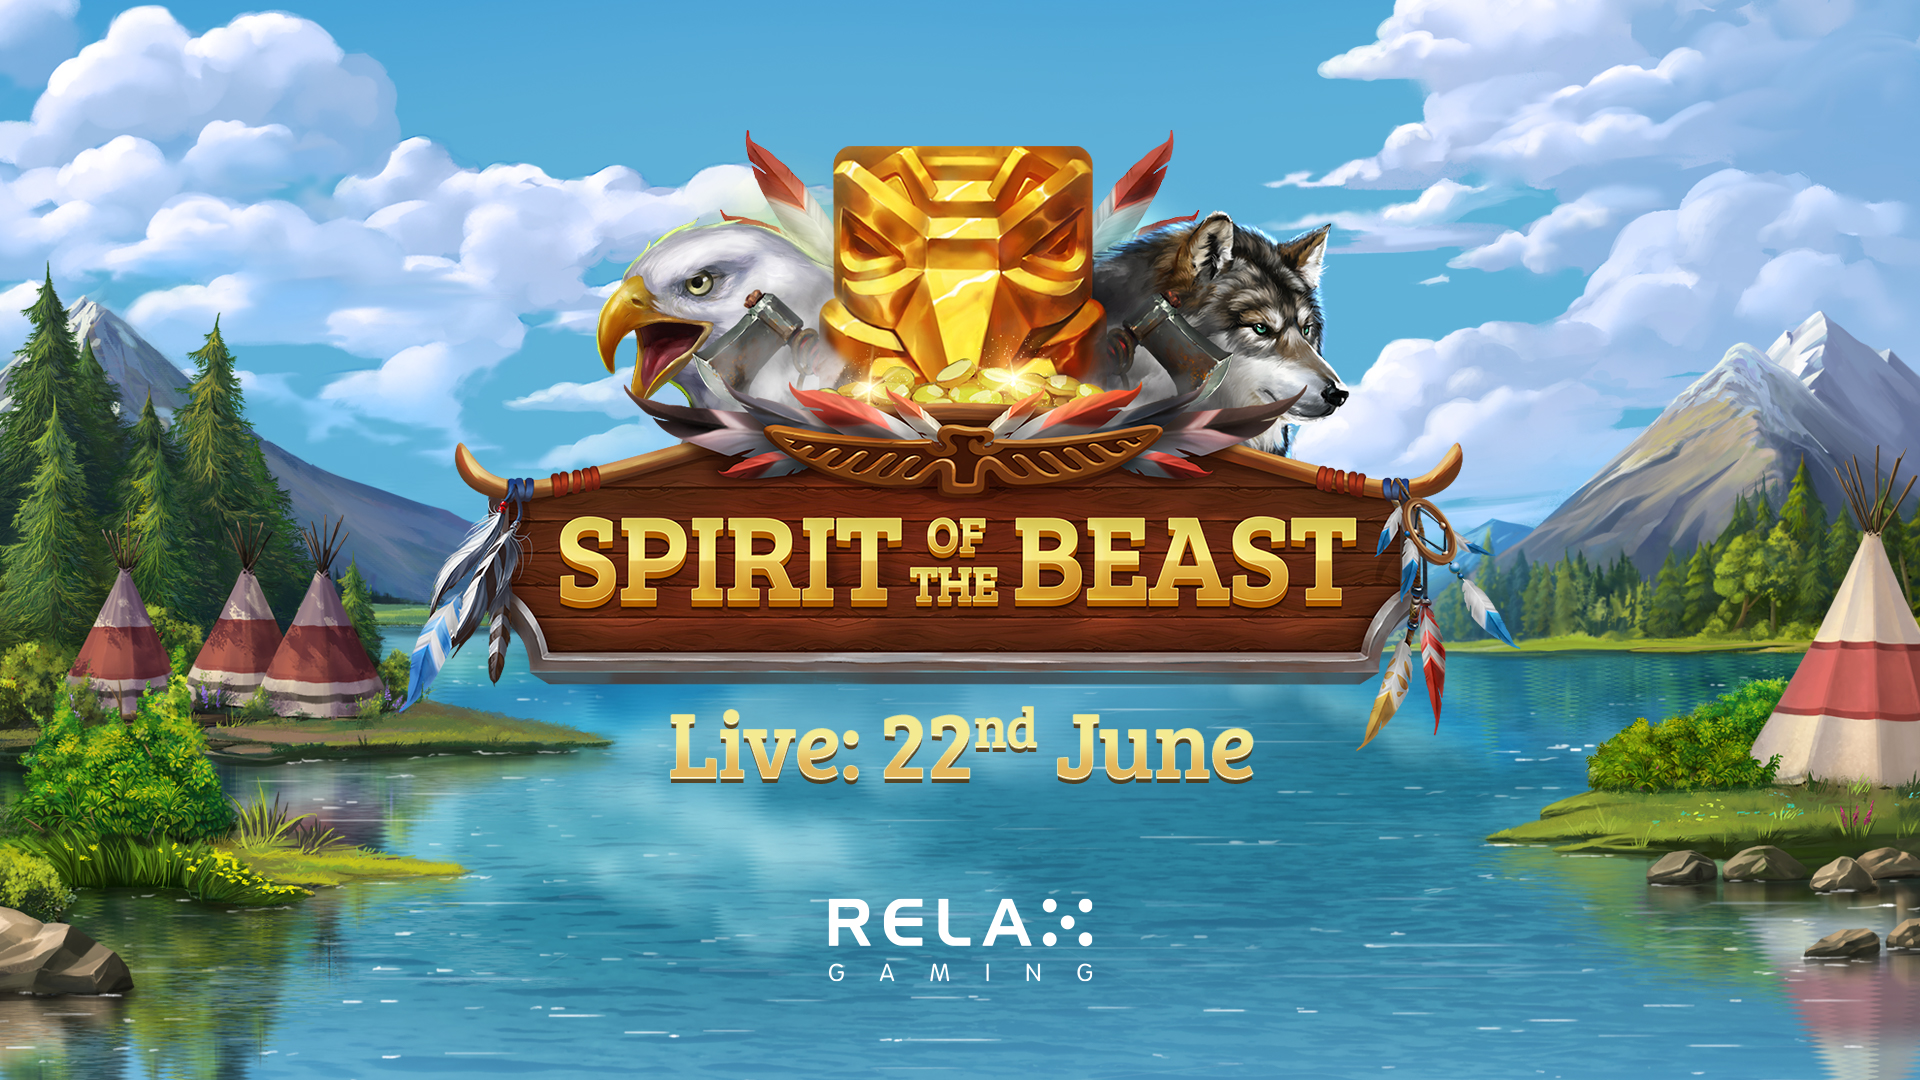 Relax channels Native America in Spirit of the Beast